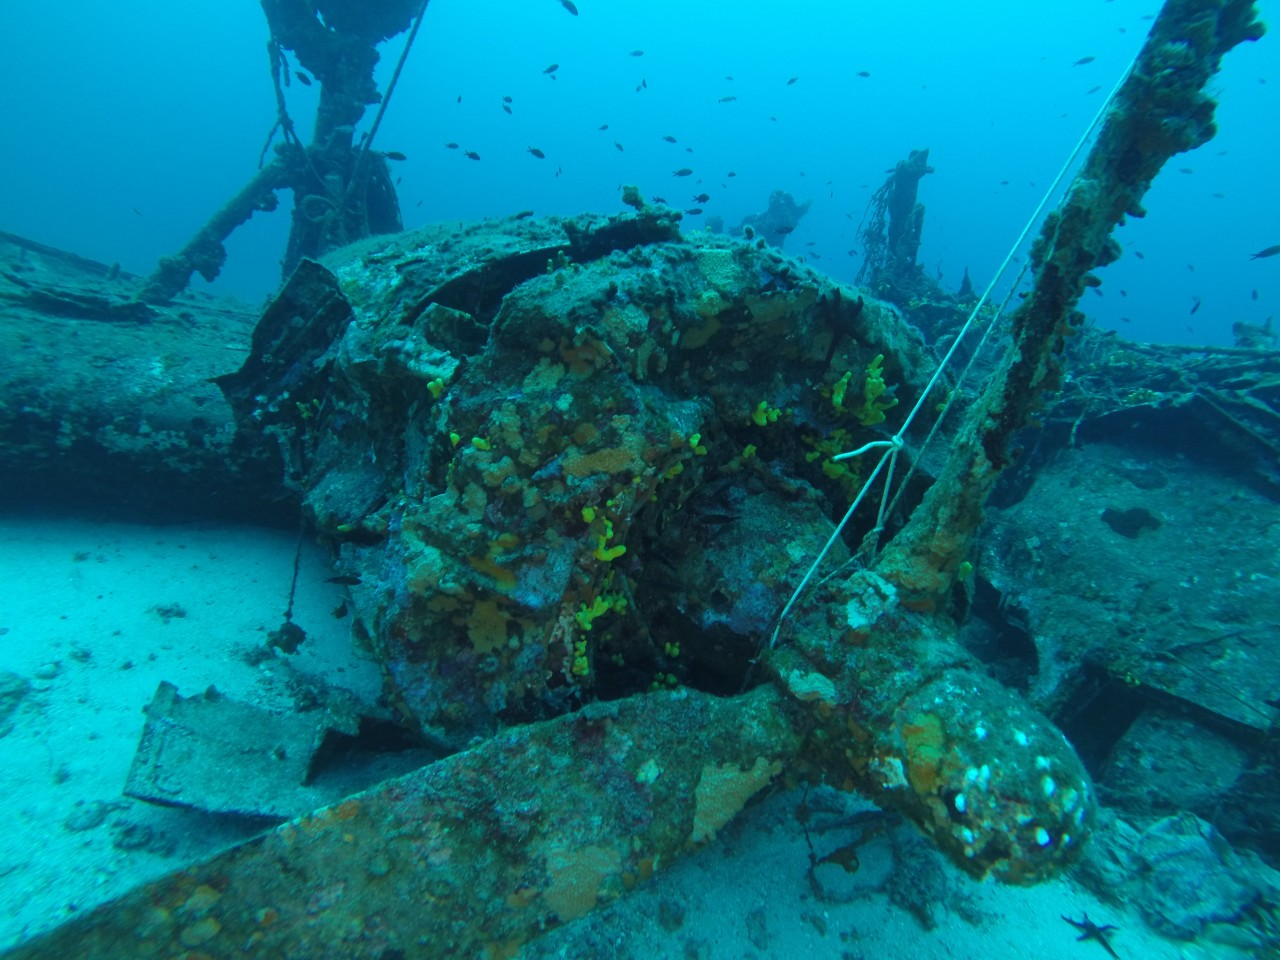 FEBRUARY 1, 2016 - VideoRay Pro 4 ROV Surveys Sunken WWII B-24 Bomber